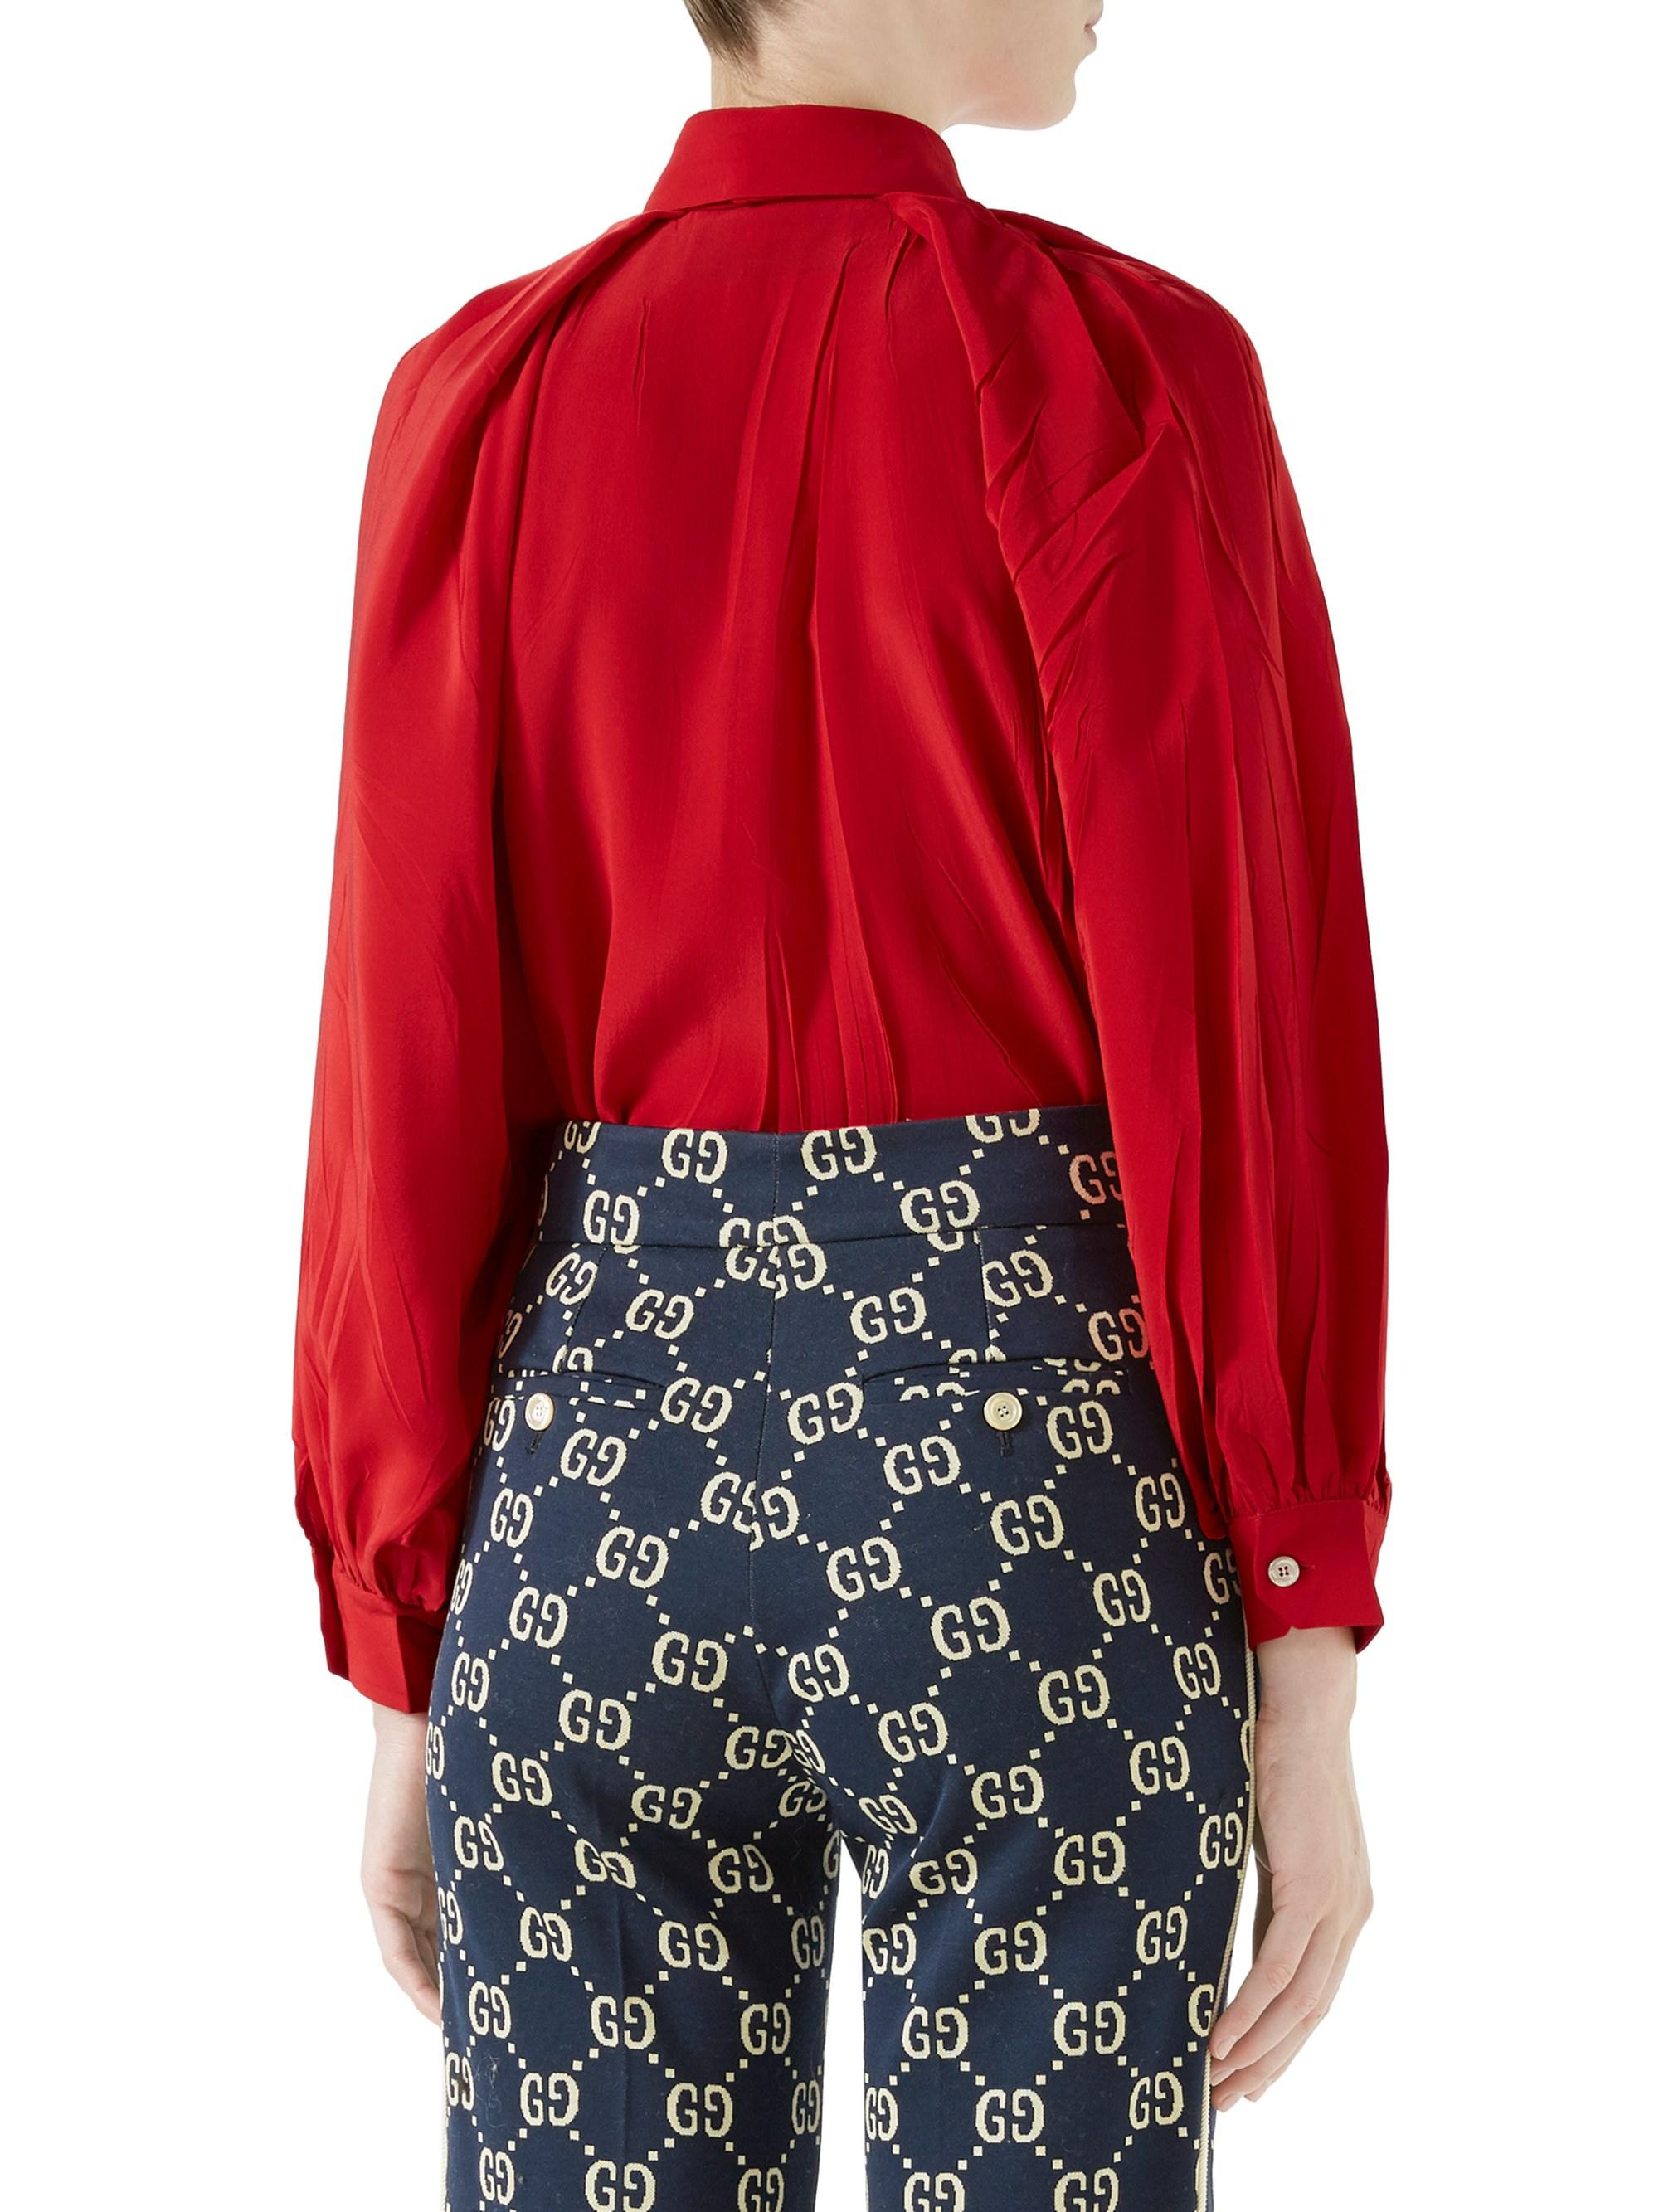 2a7376c1 Lyst - Gucci Long-sleeve Bow Detail Silk Shirt in Red